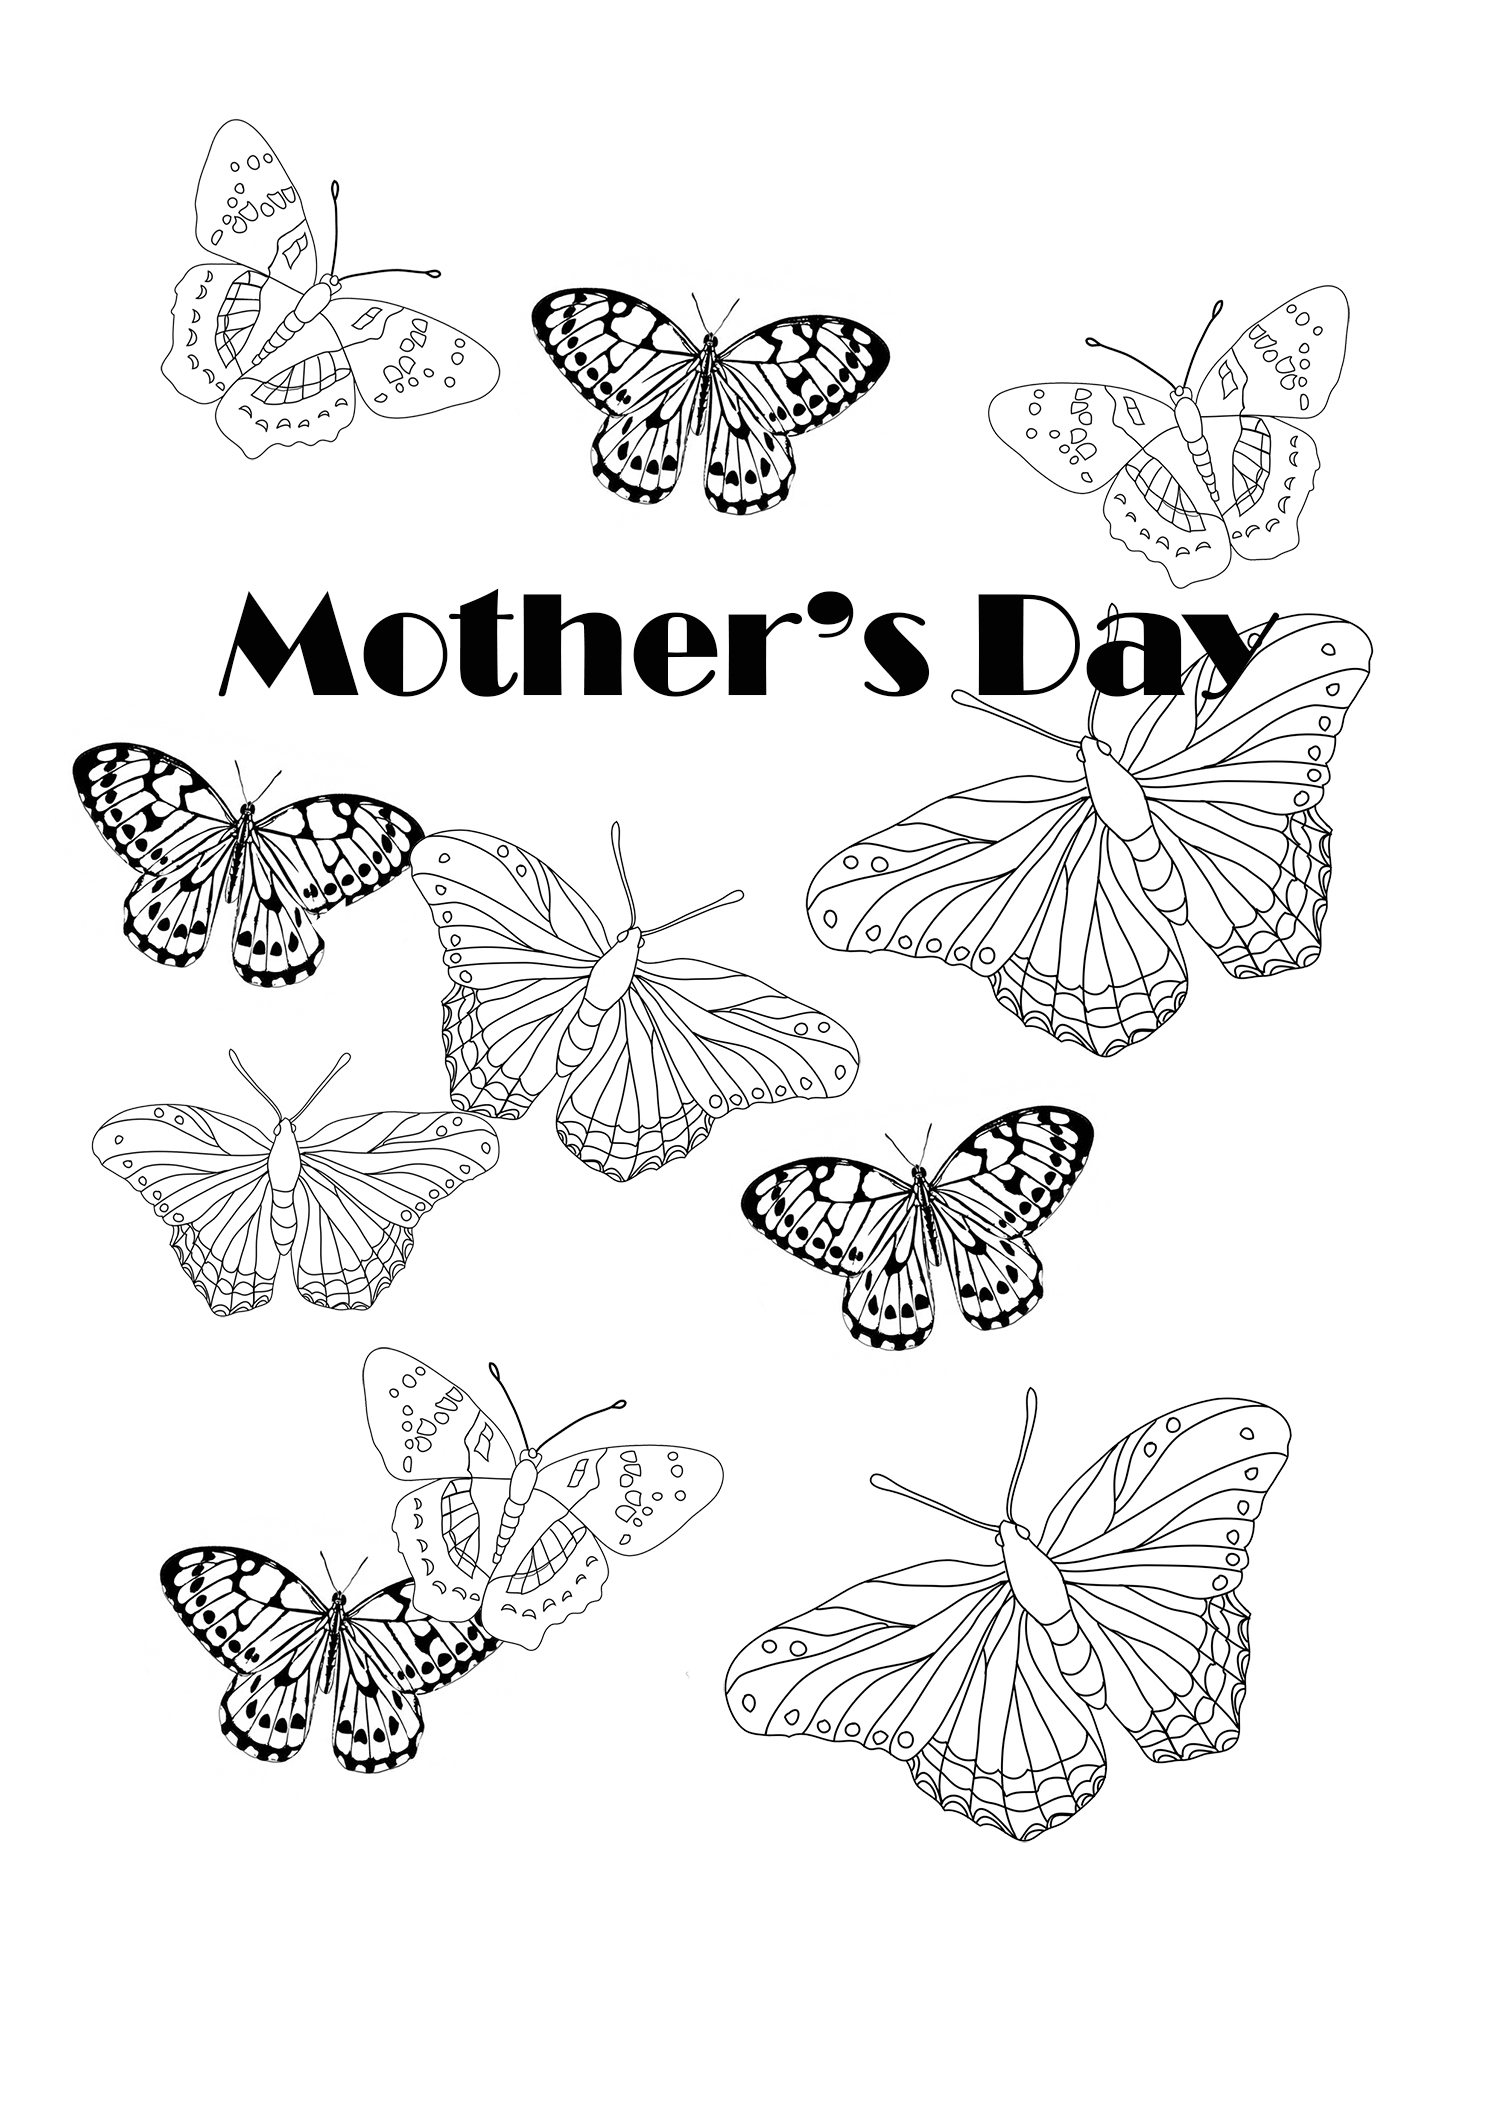 coloring butterflies for mother's day